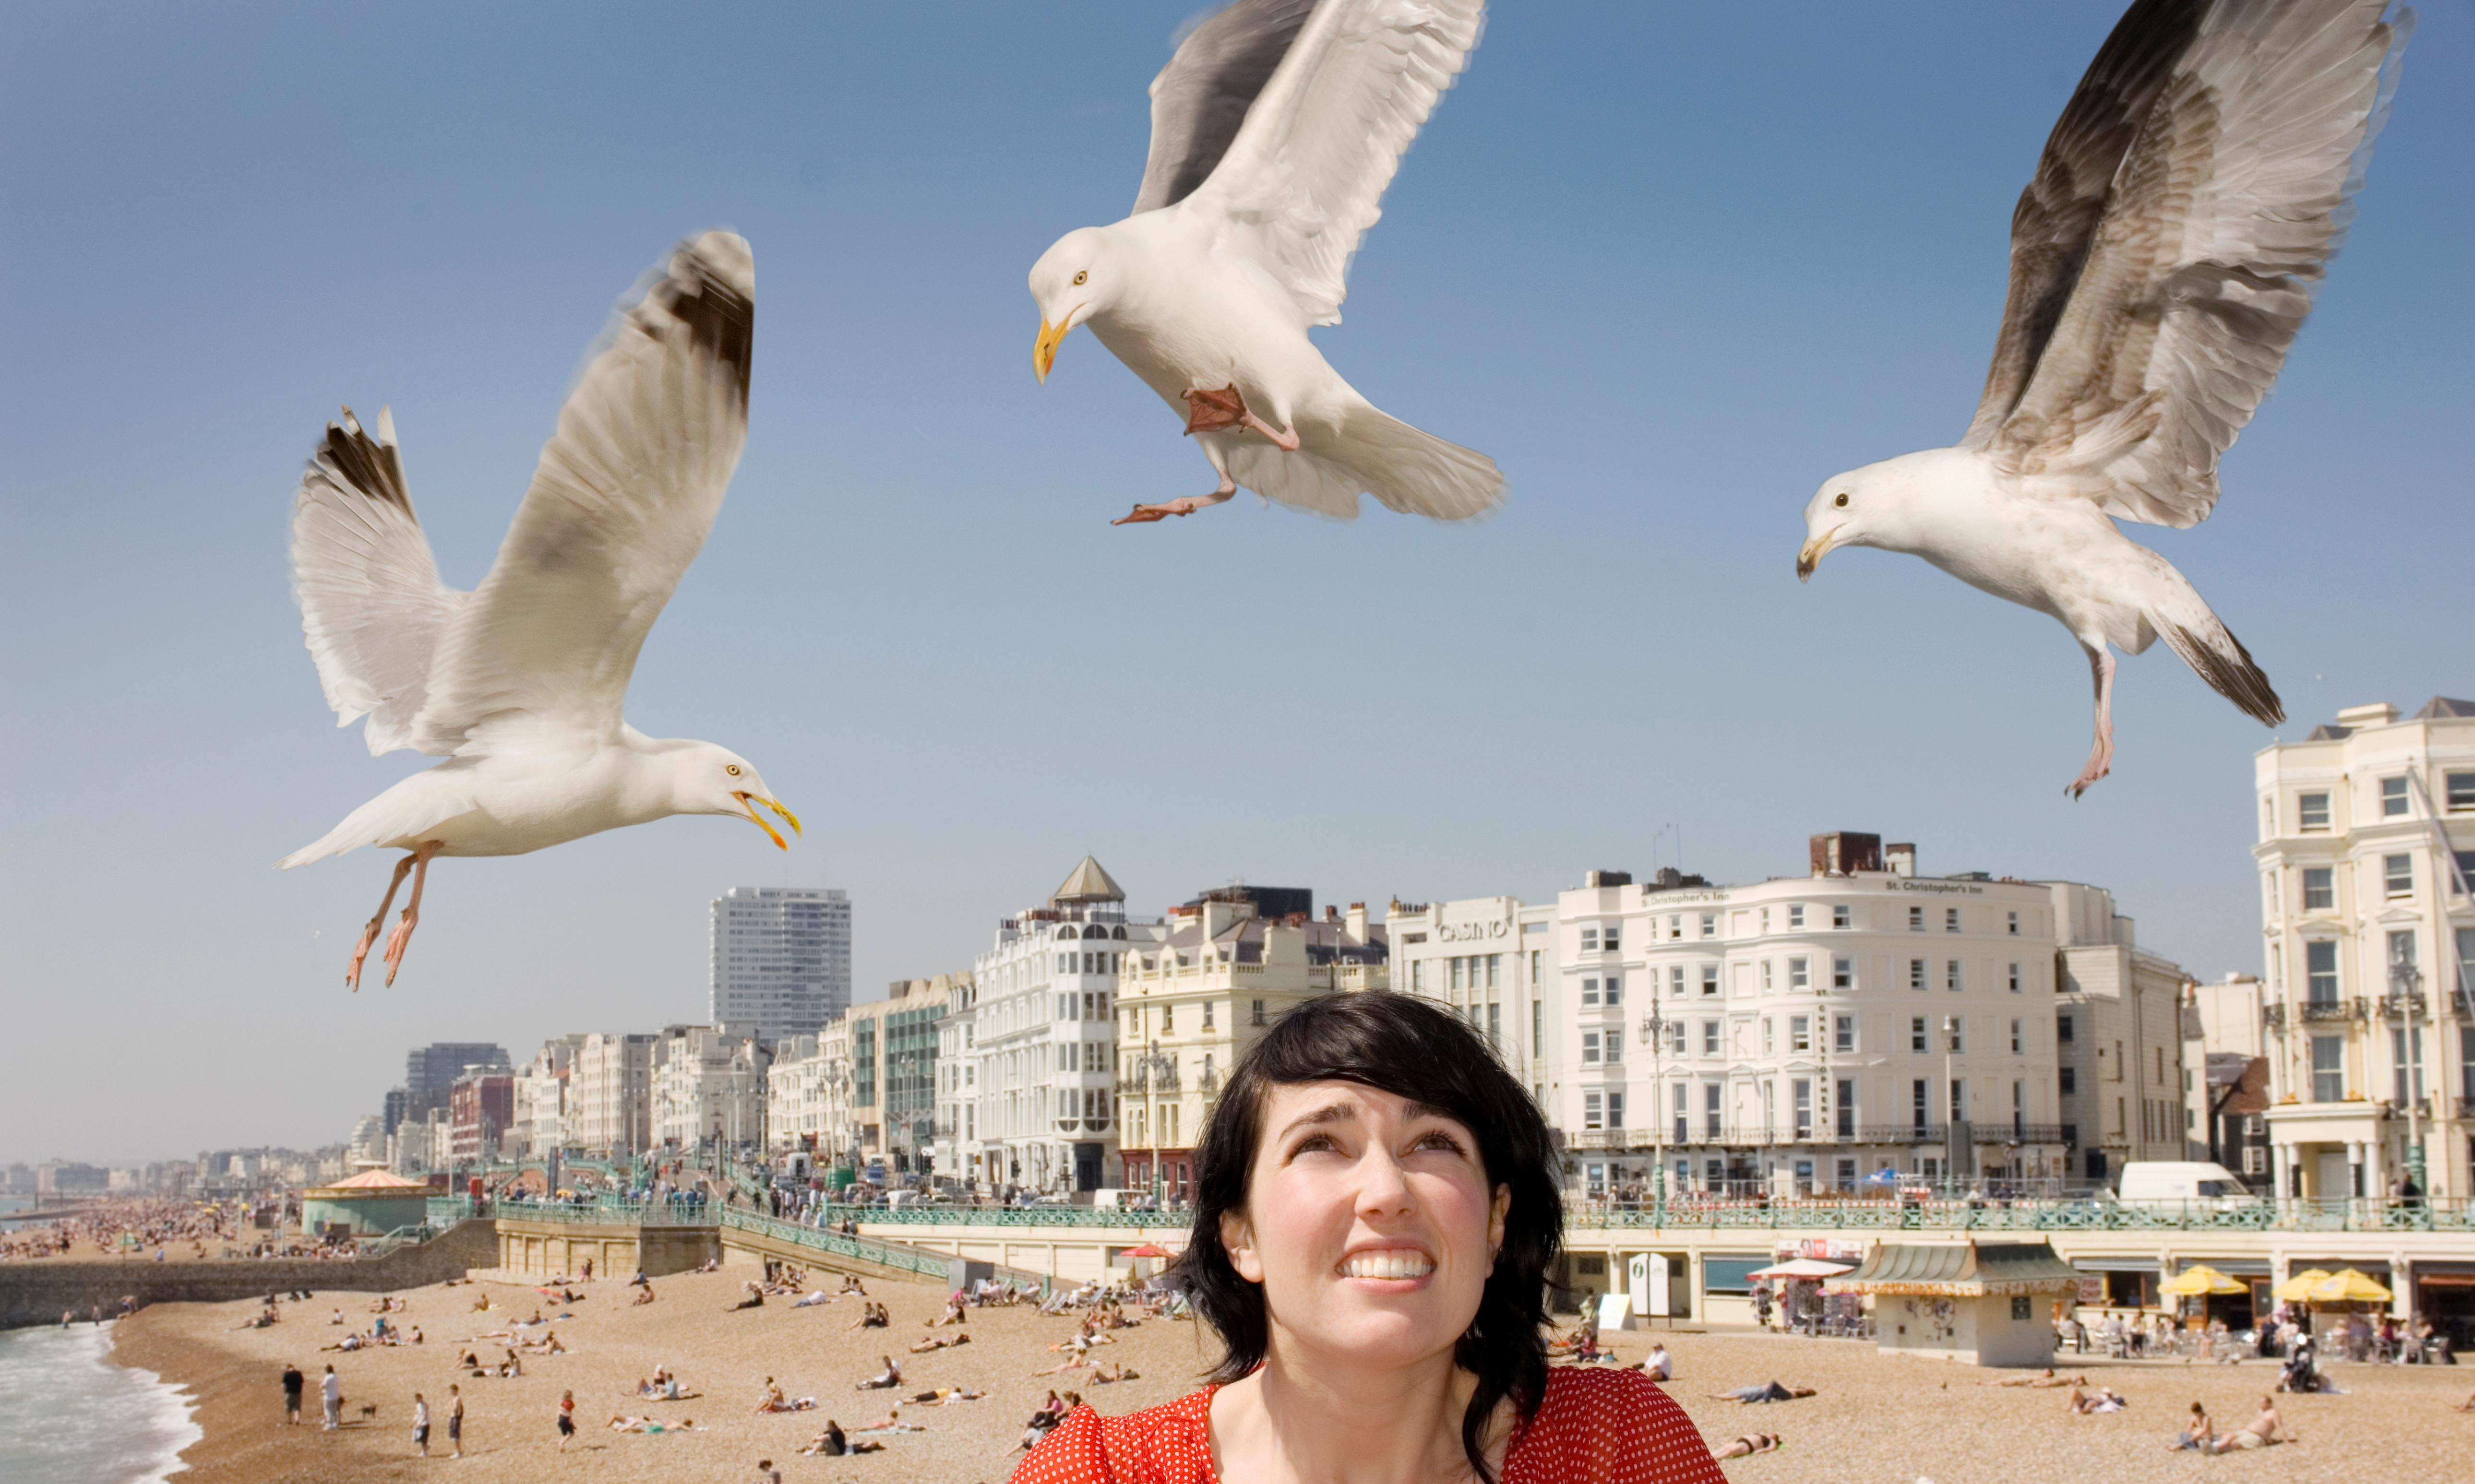 Beware the risks if you do stare down a seagull – it may lead to love